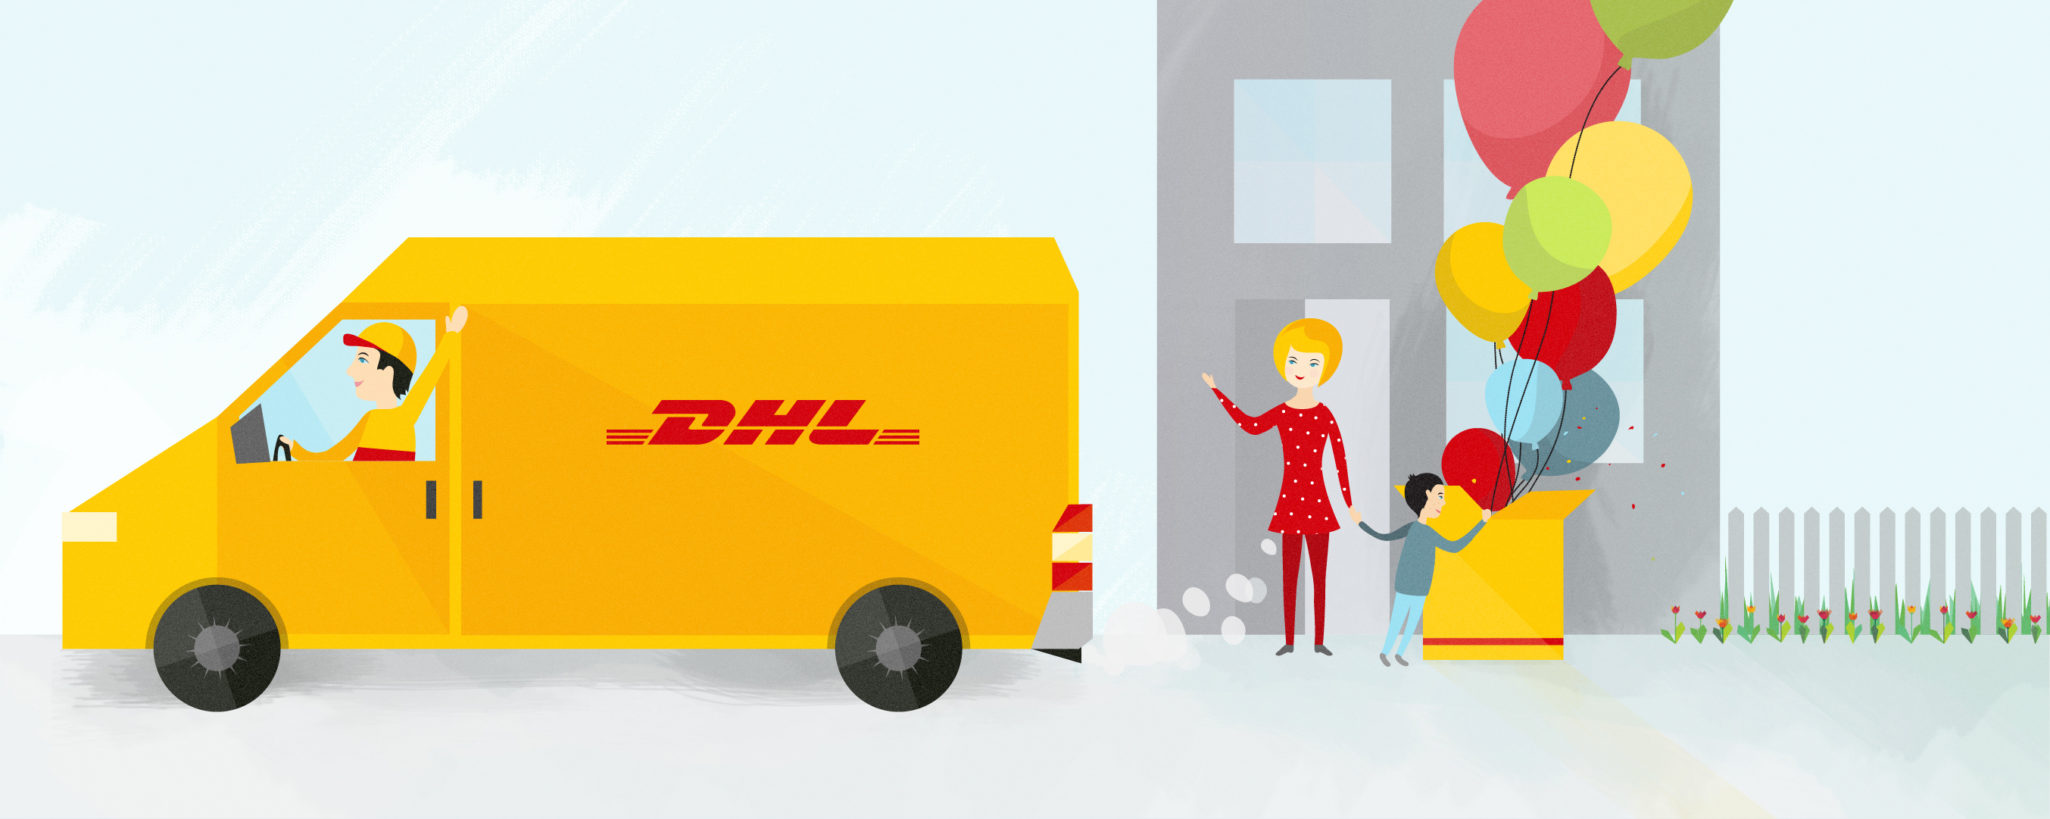 Styleframe illustration for DHL animation: Delivery + birthday